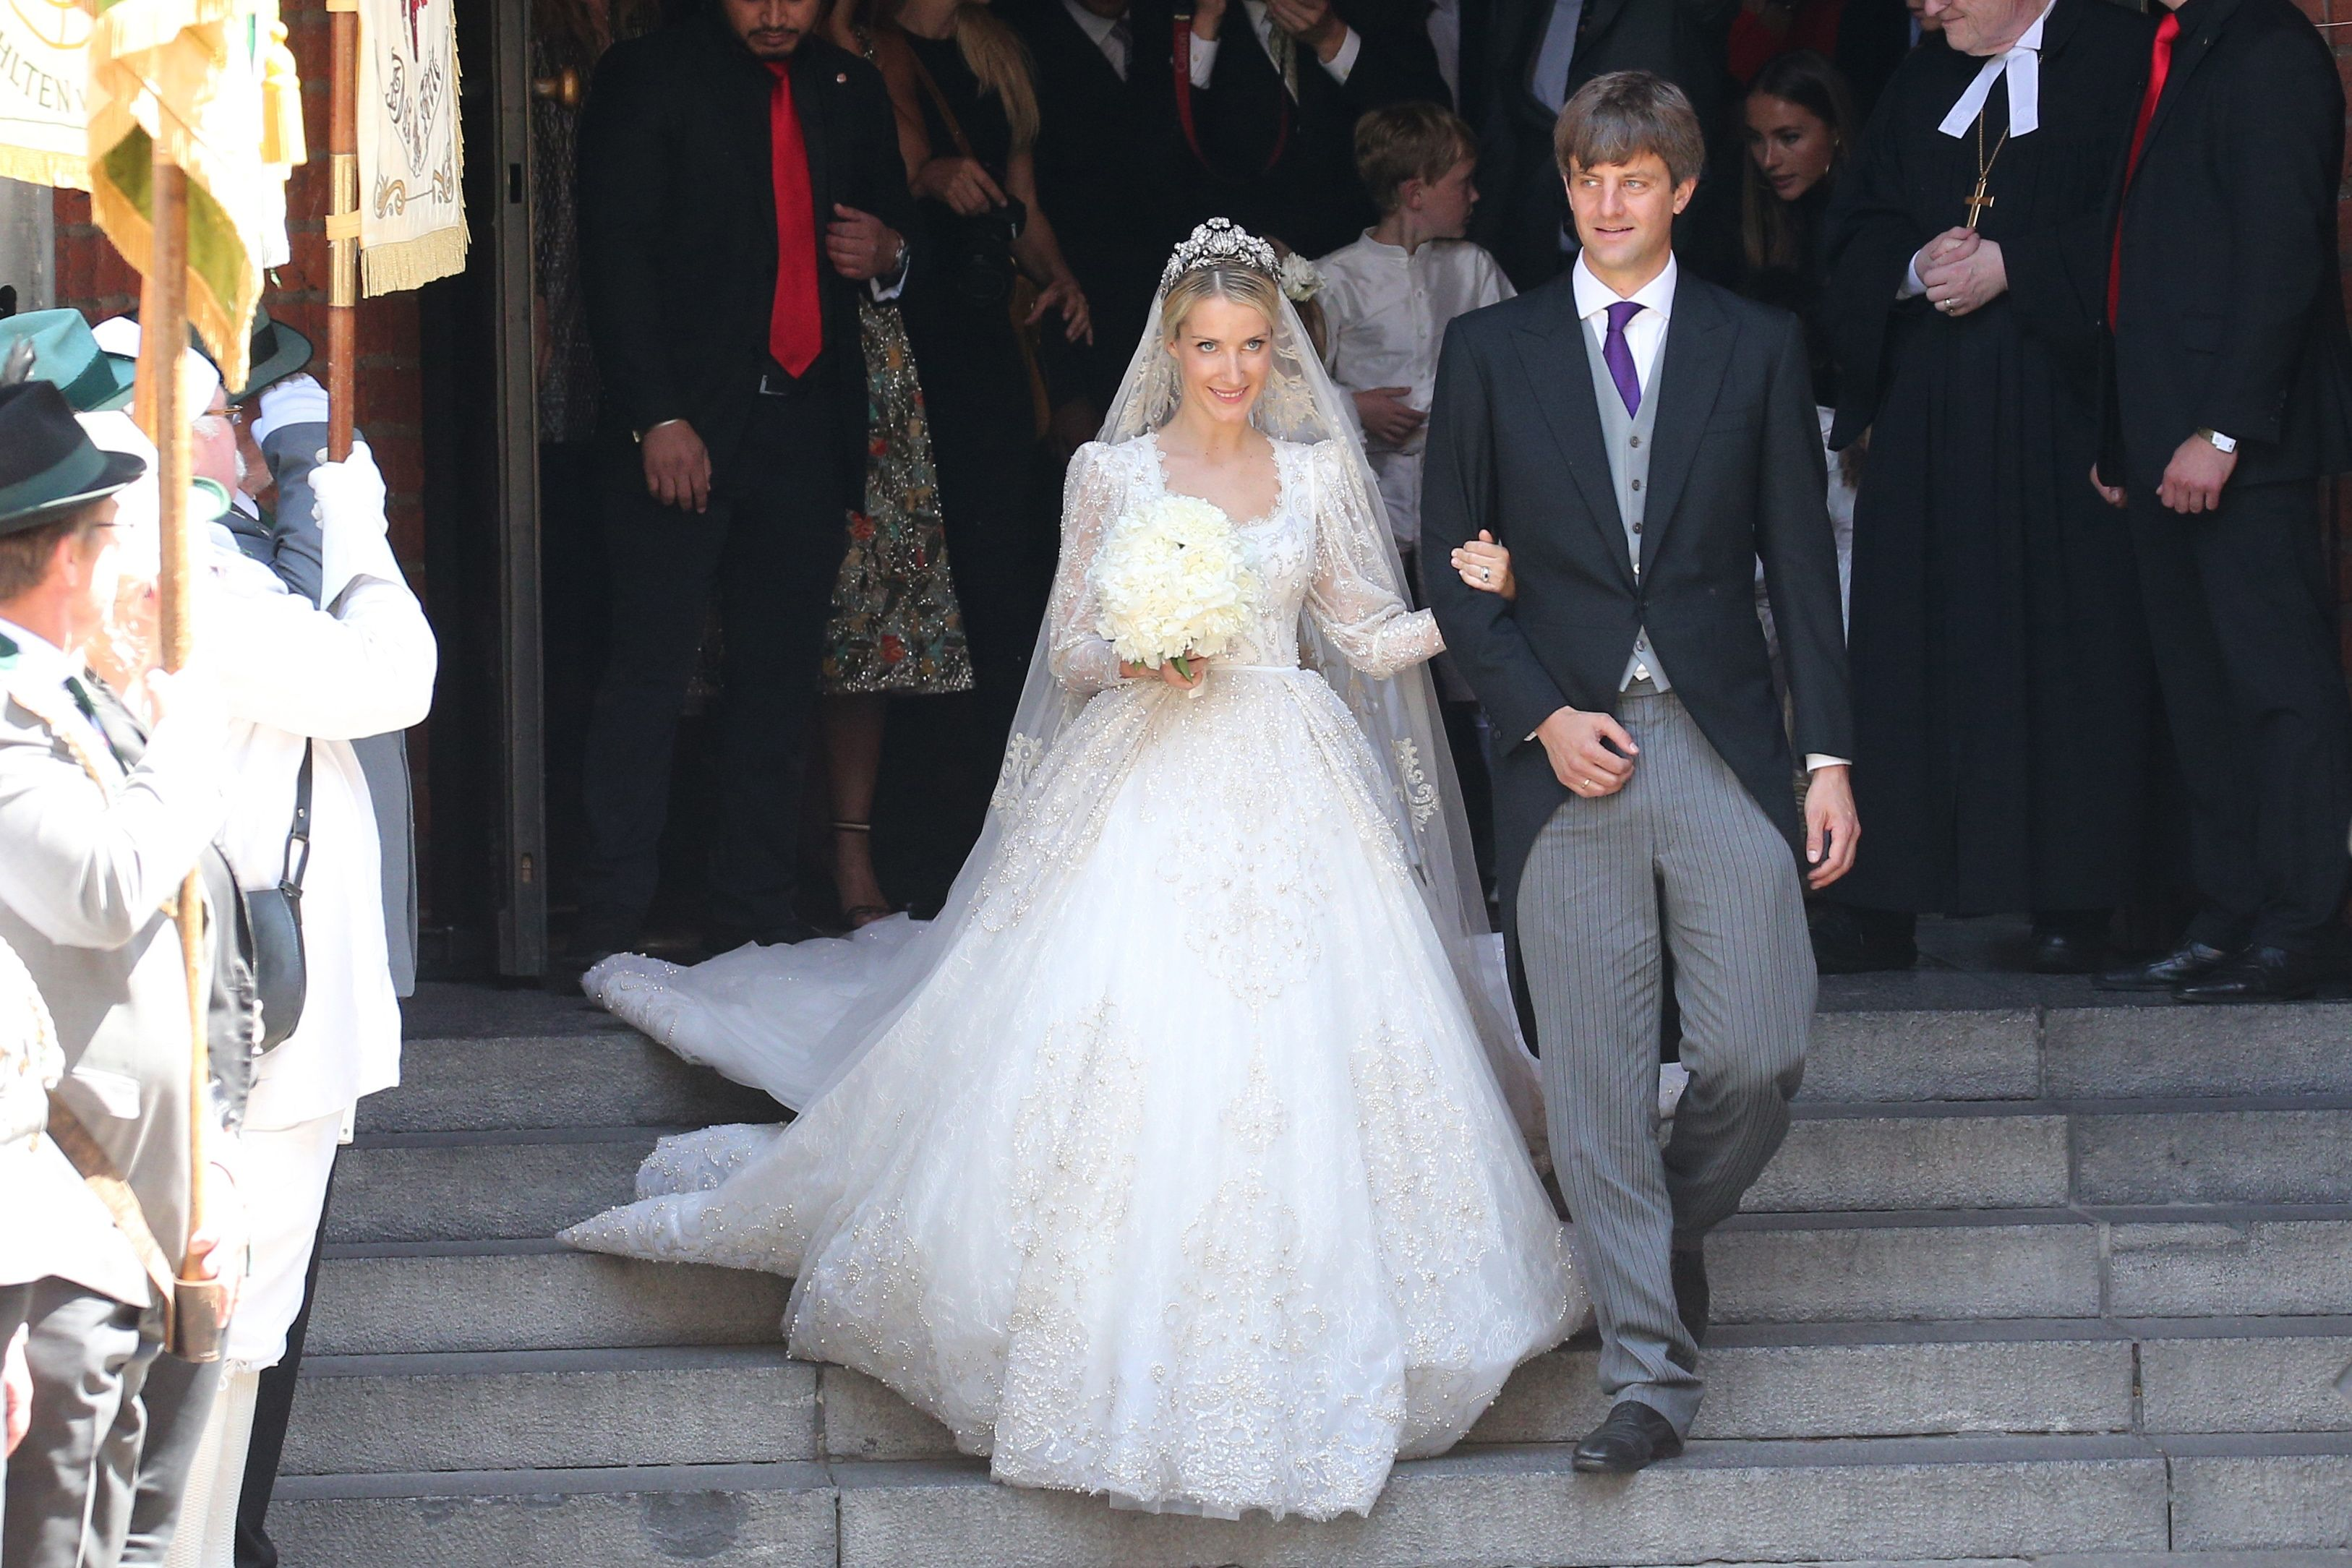 50 Best Royal Wedding Dresses Of All Time Royal Family Wedding Gowns